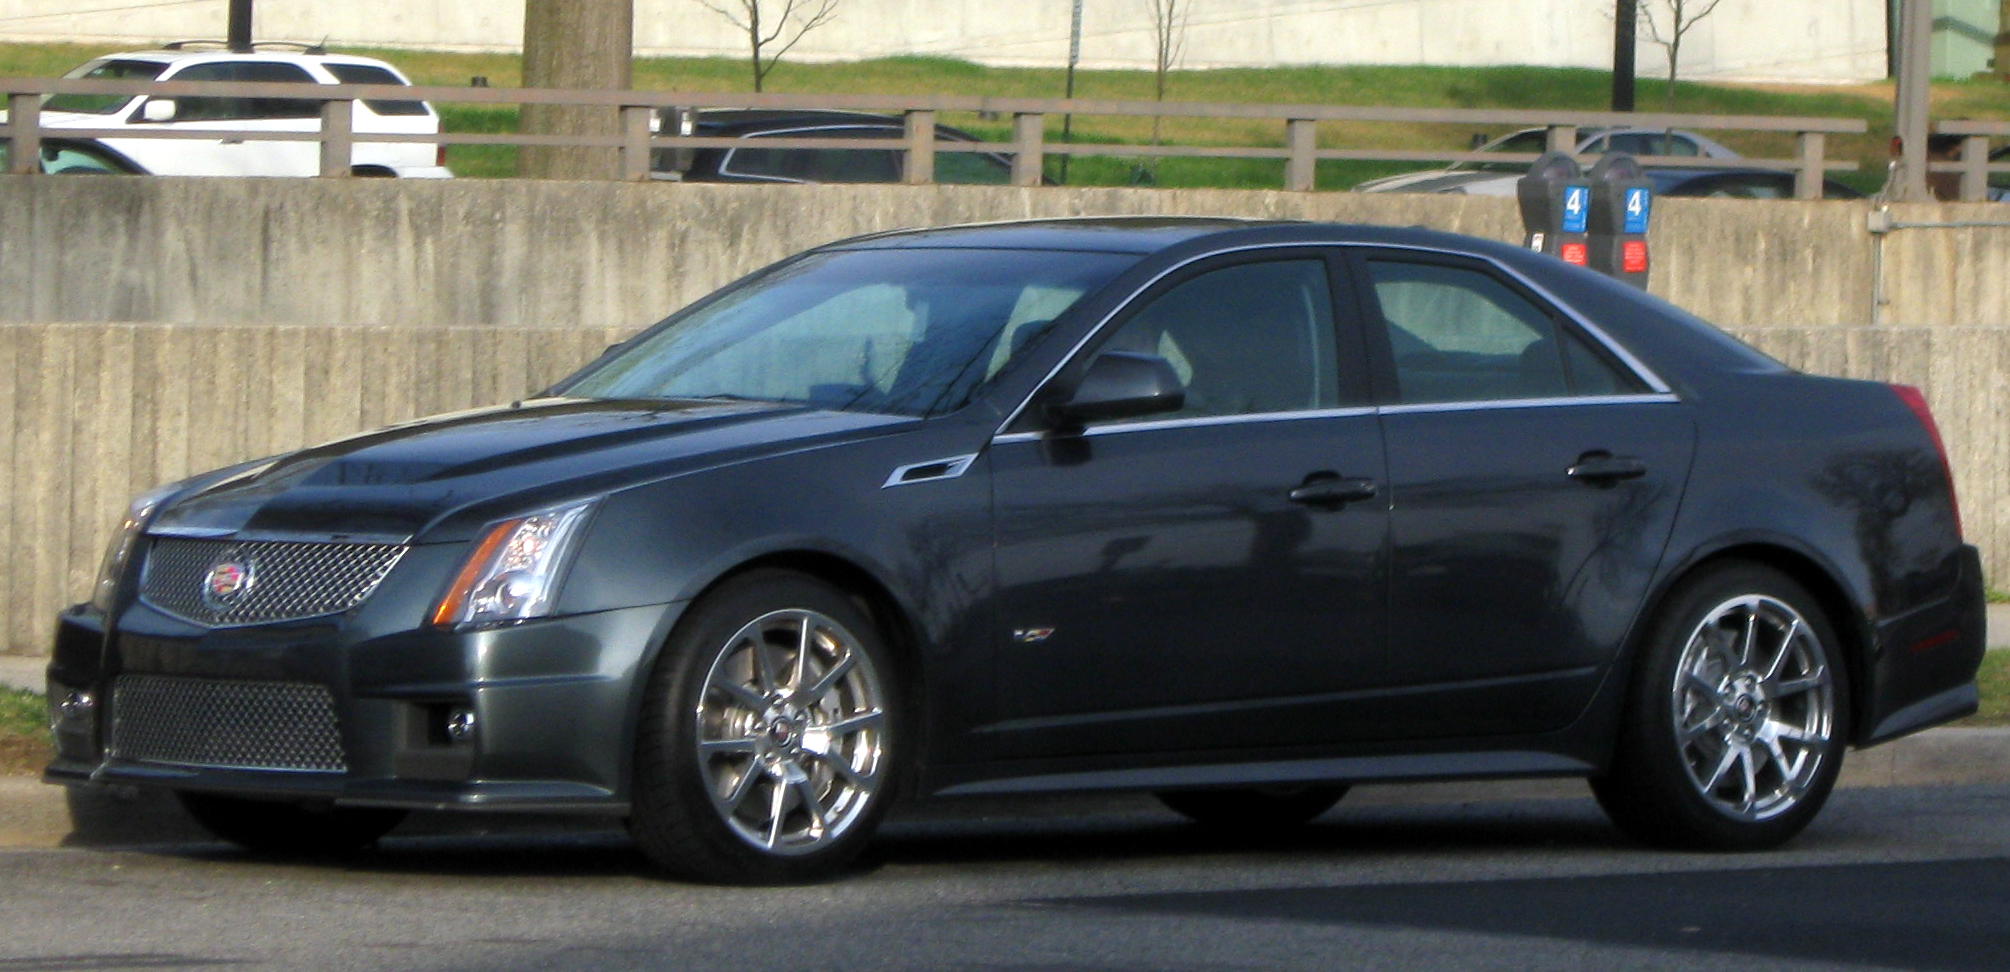 2007 Cadillac CTS-V | car review @ Top Speed